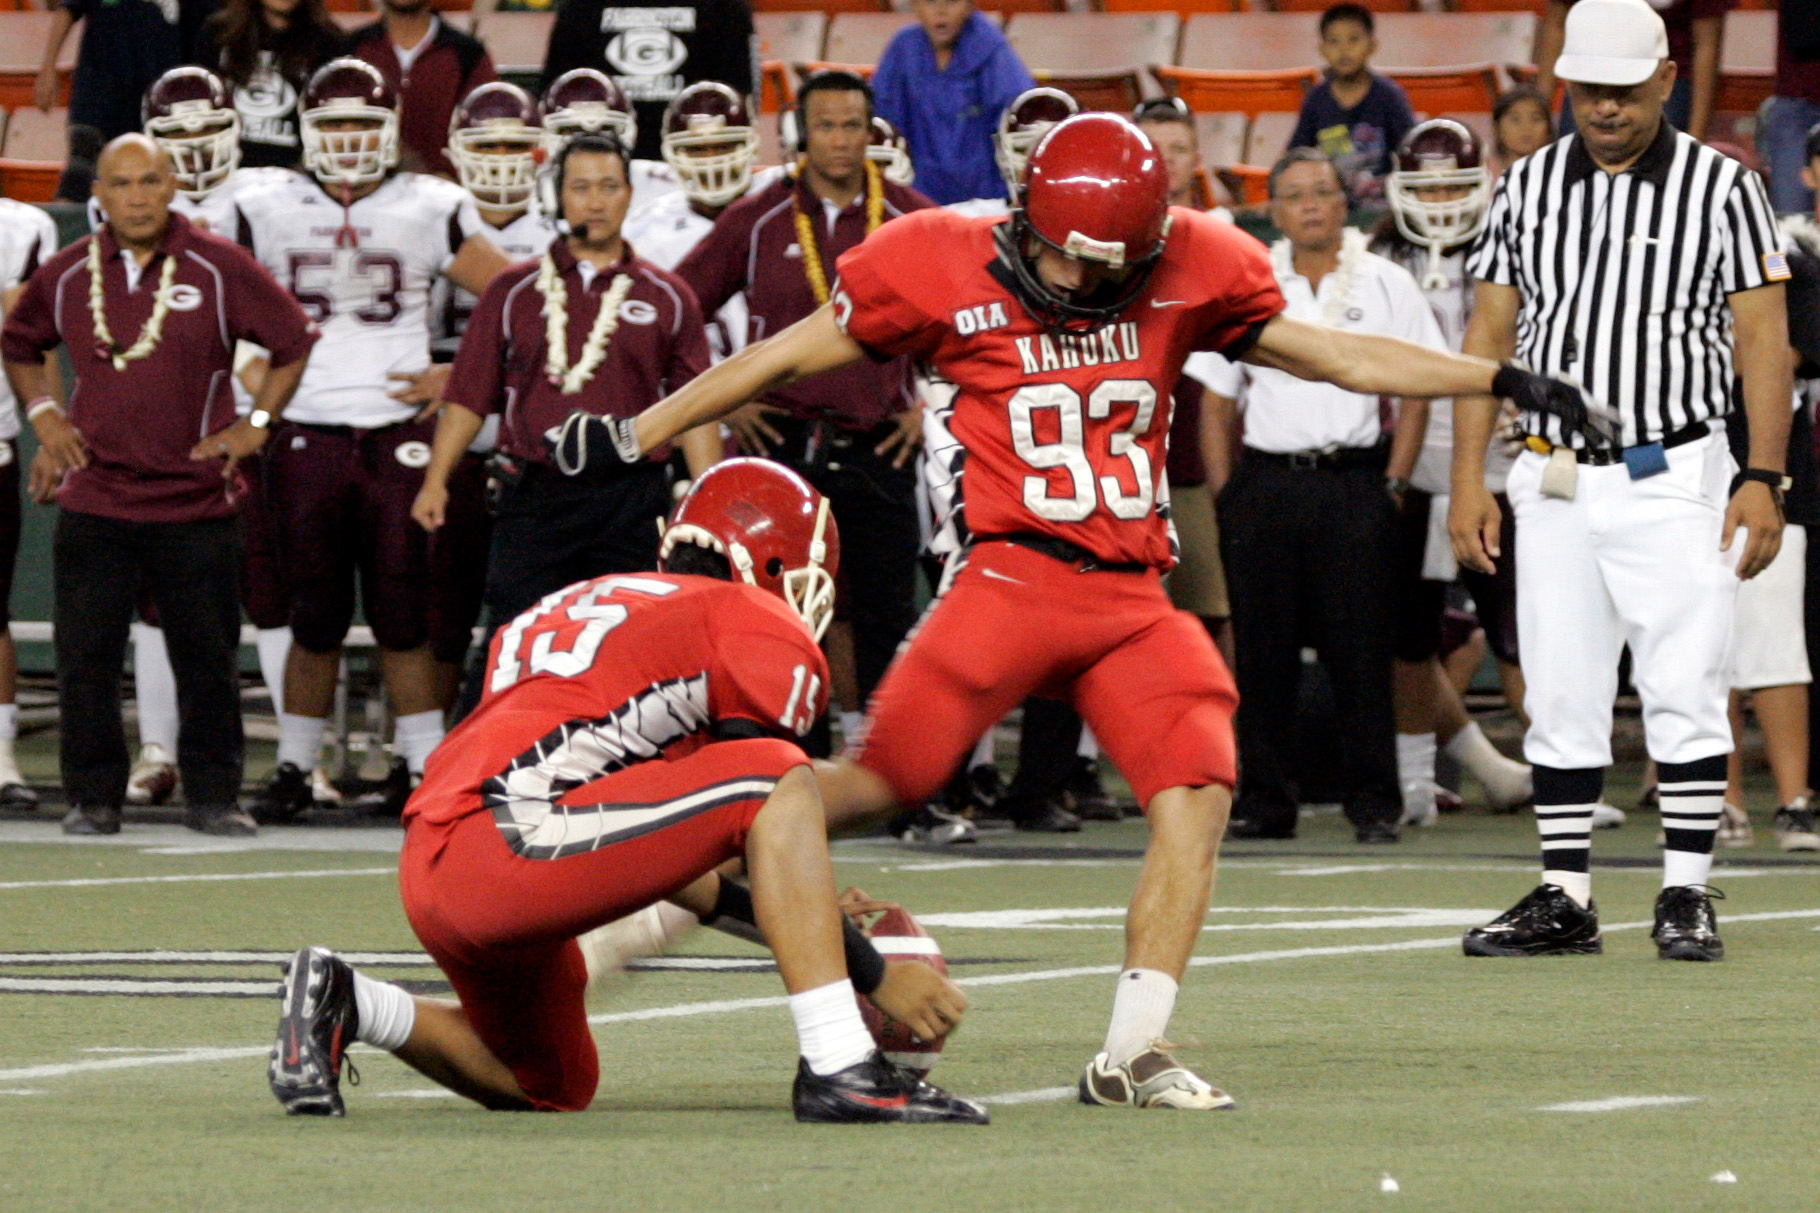 Kahuku HS. Photo by Michael Sullivan